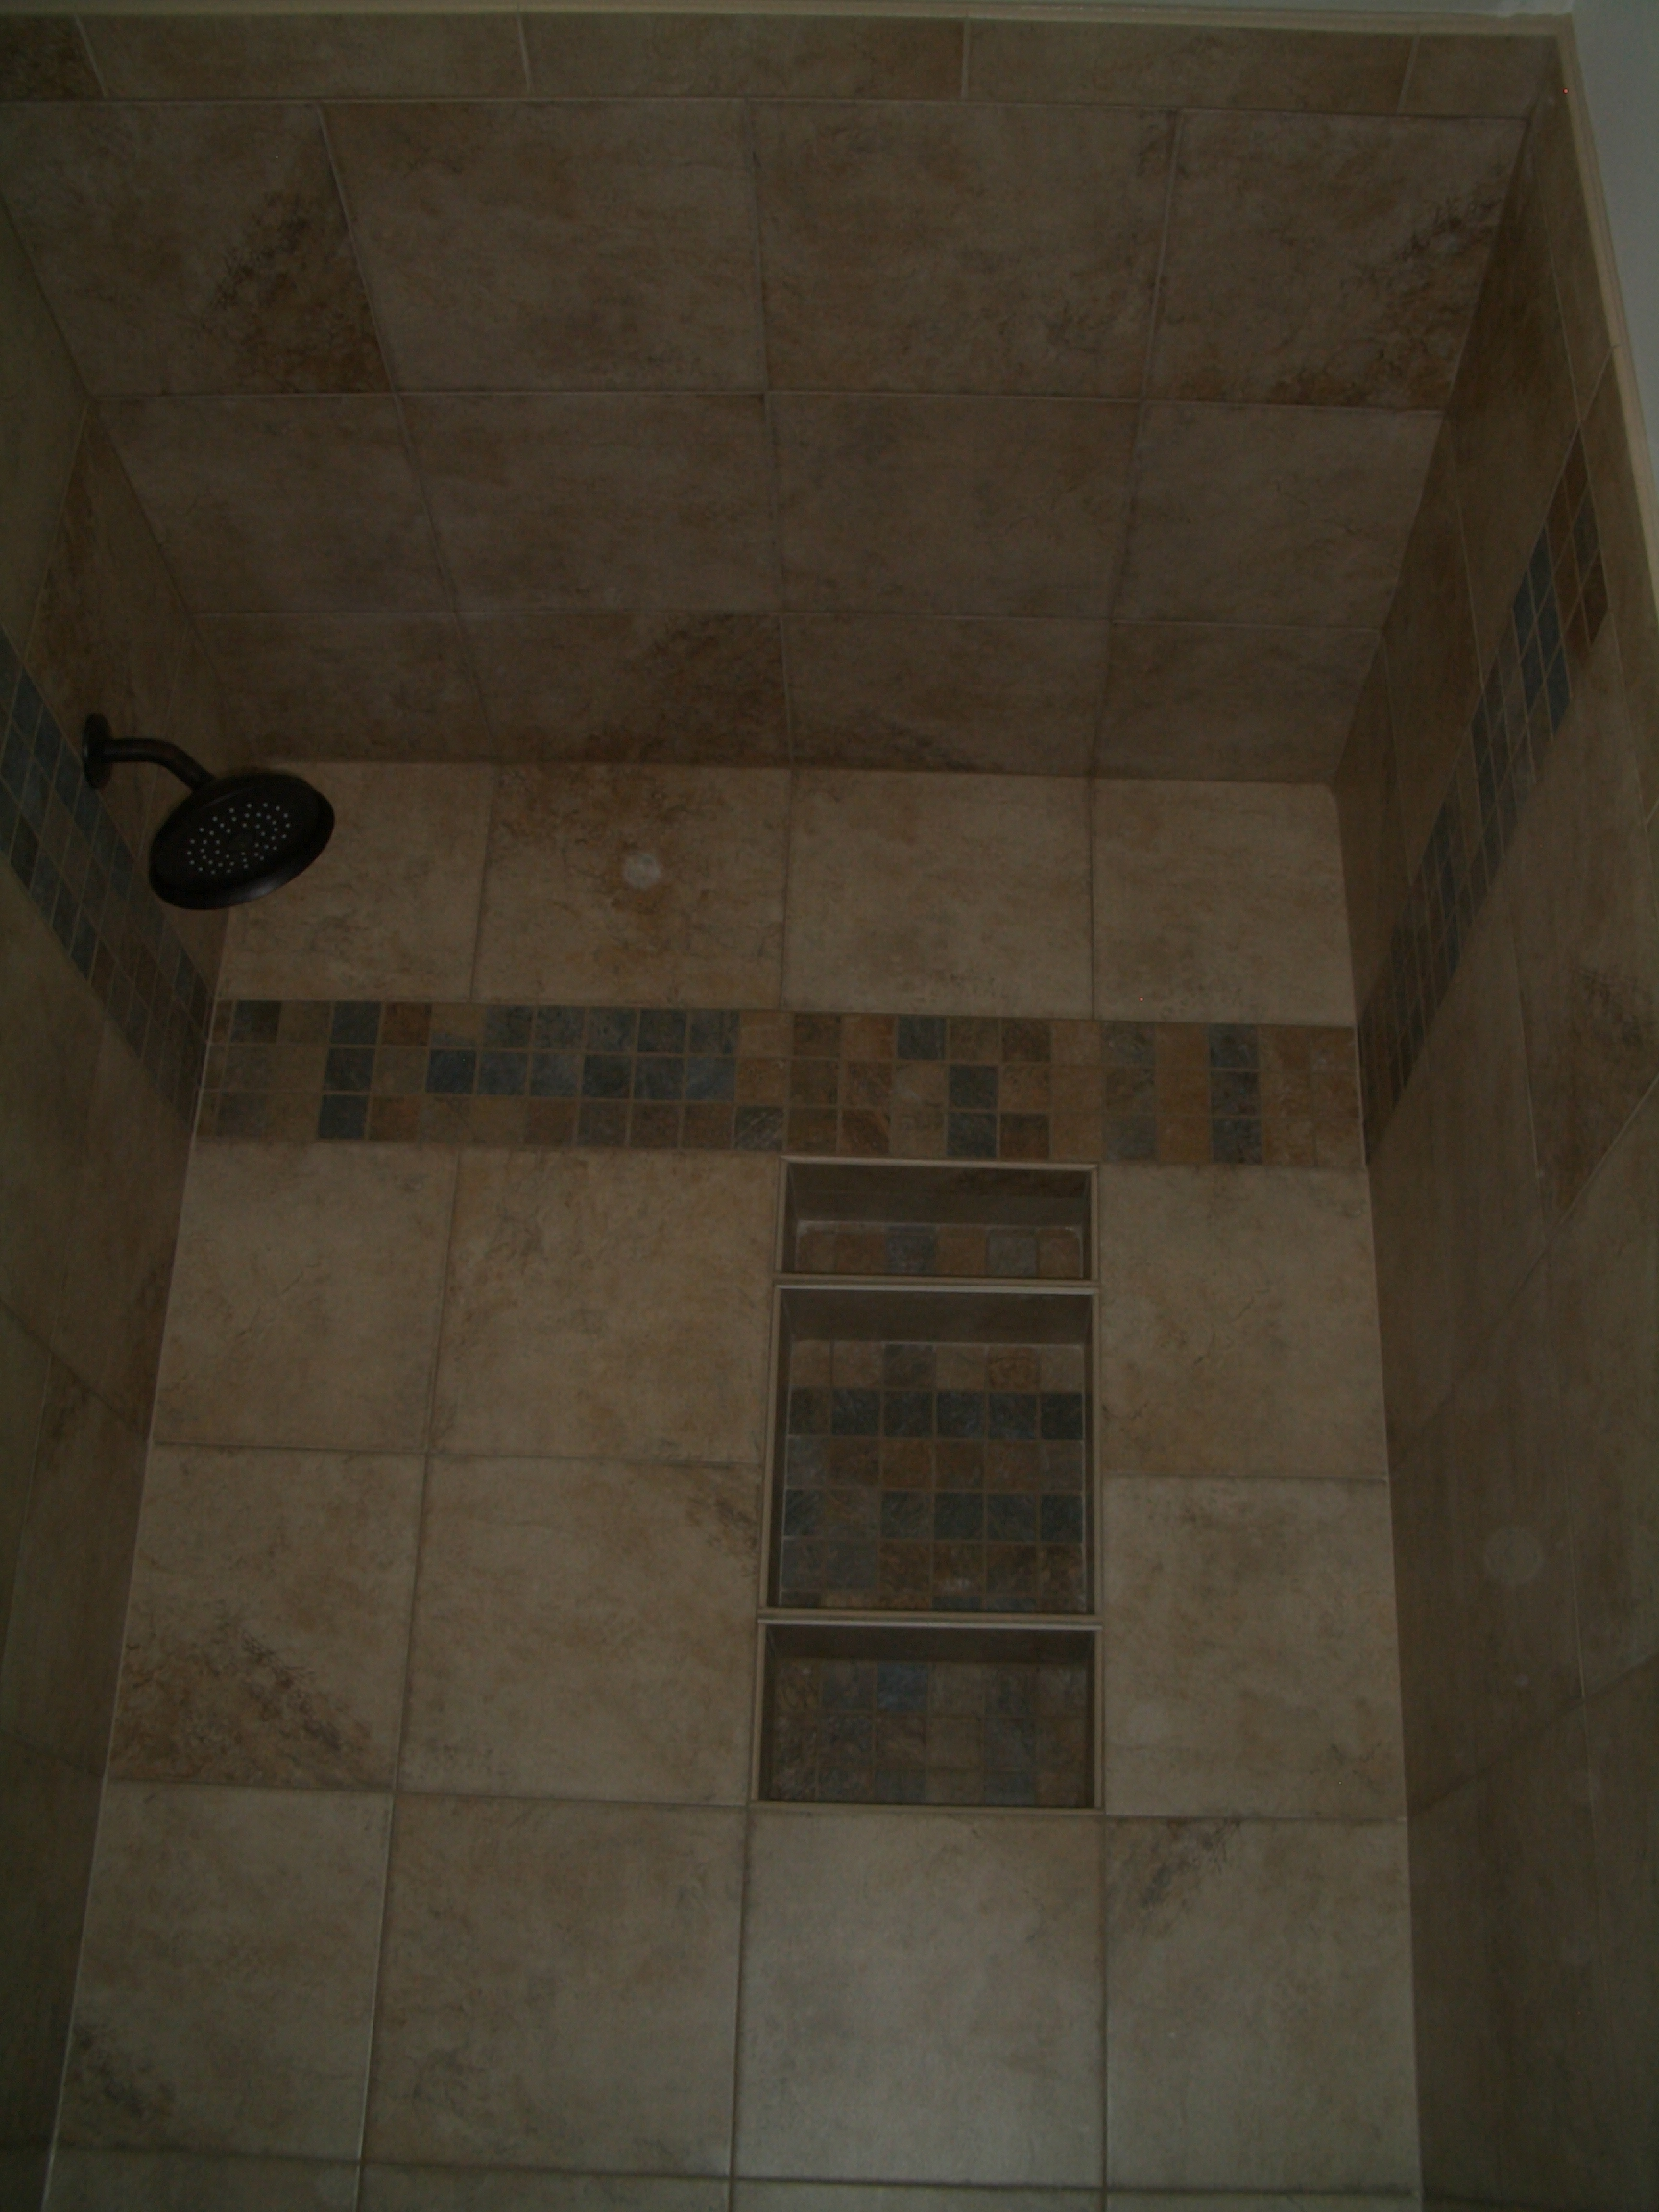 Tiling a shower ceiling ceiling systems Install tile shower